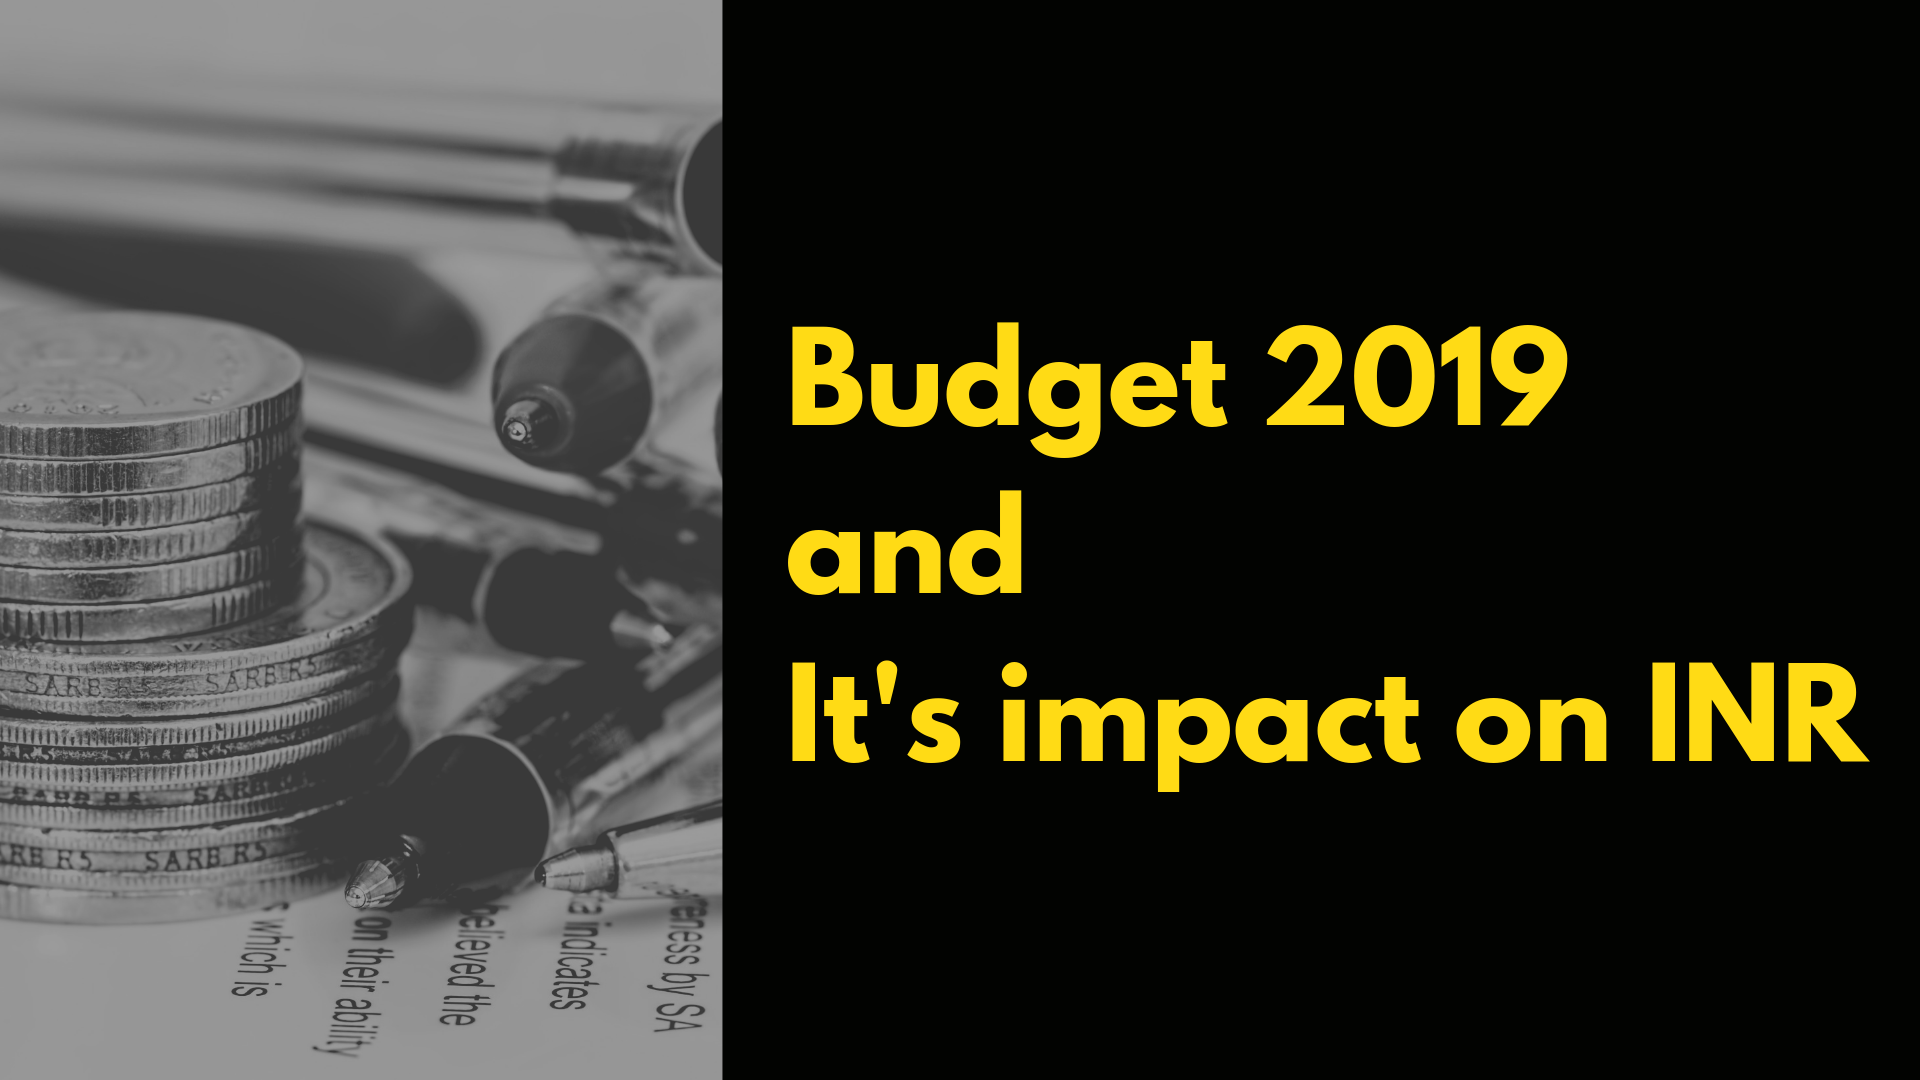 Budget 2019 and its impact on INR